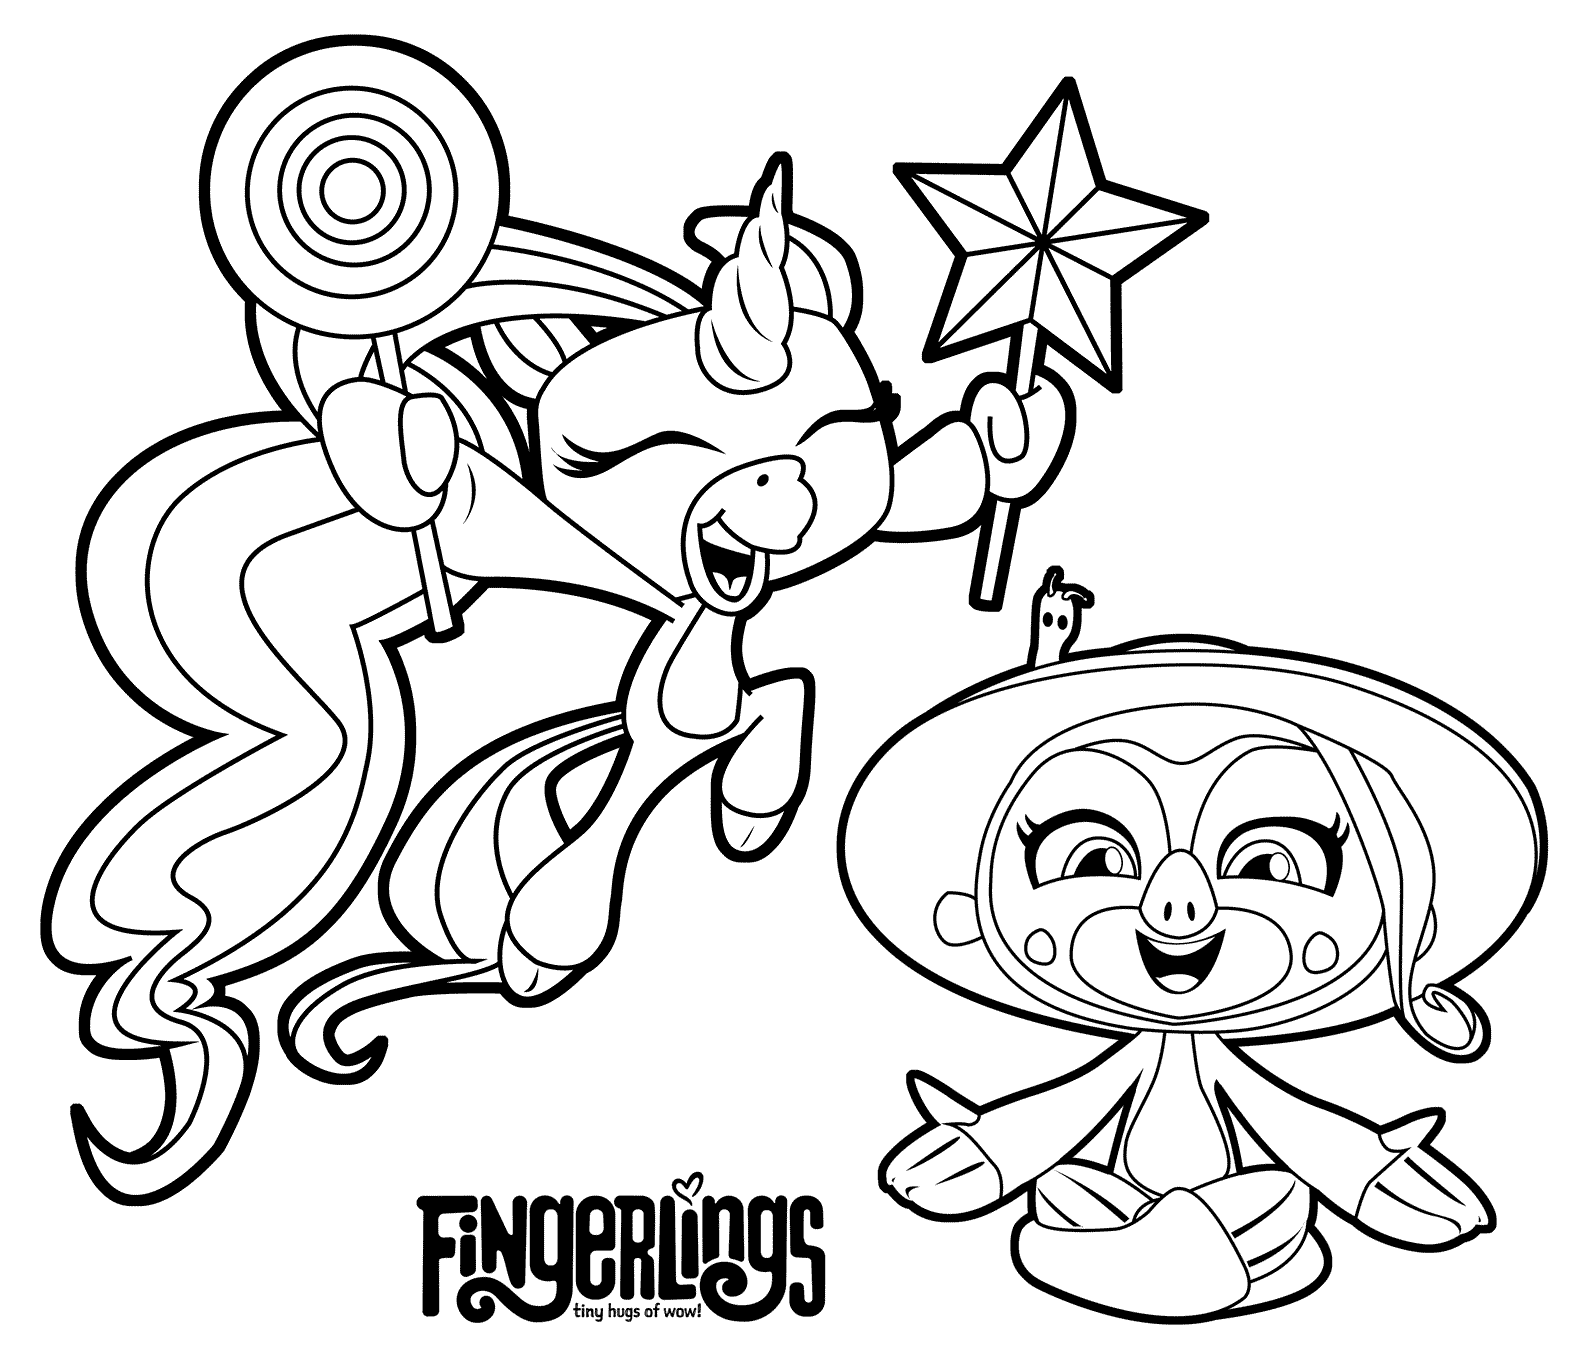 Fingerlings Sloth Coloring Page